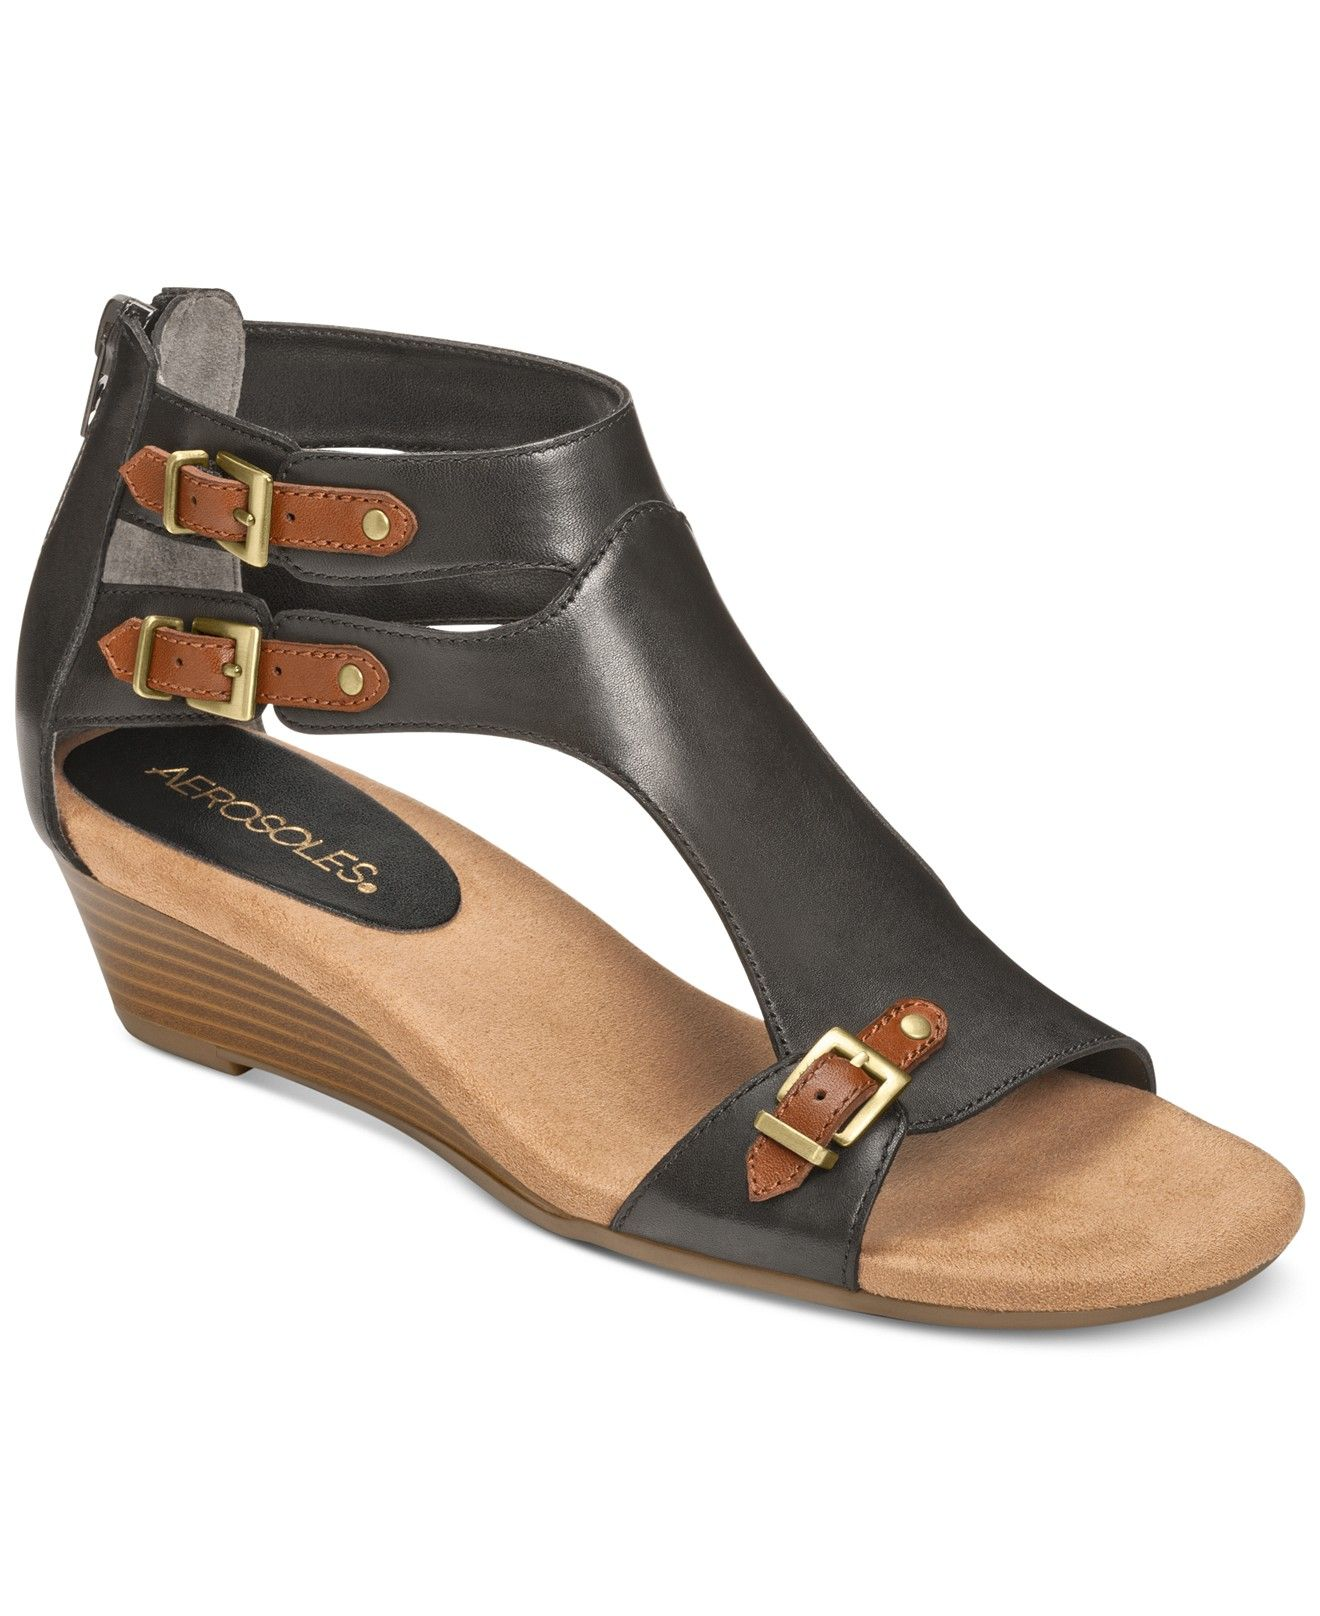 Aerosoles Yet Another Wedge Sandals - Shoes - Macy's